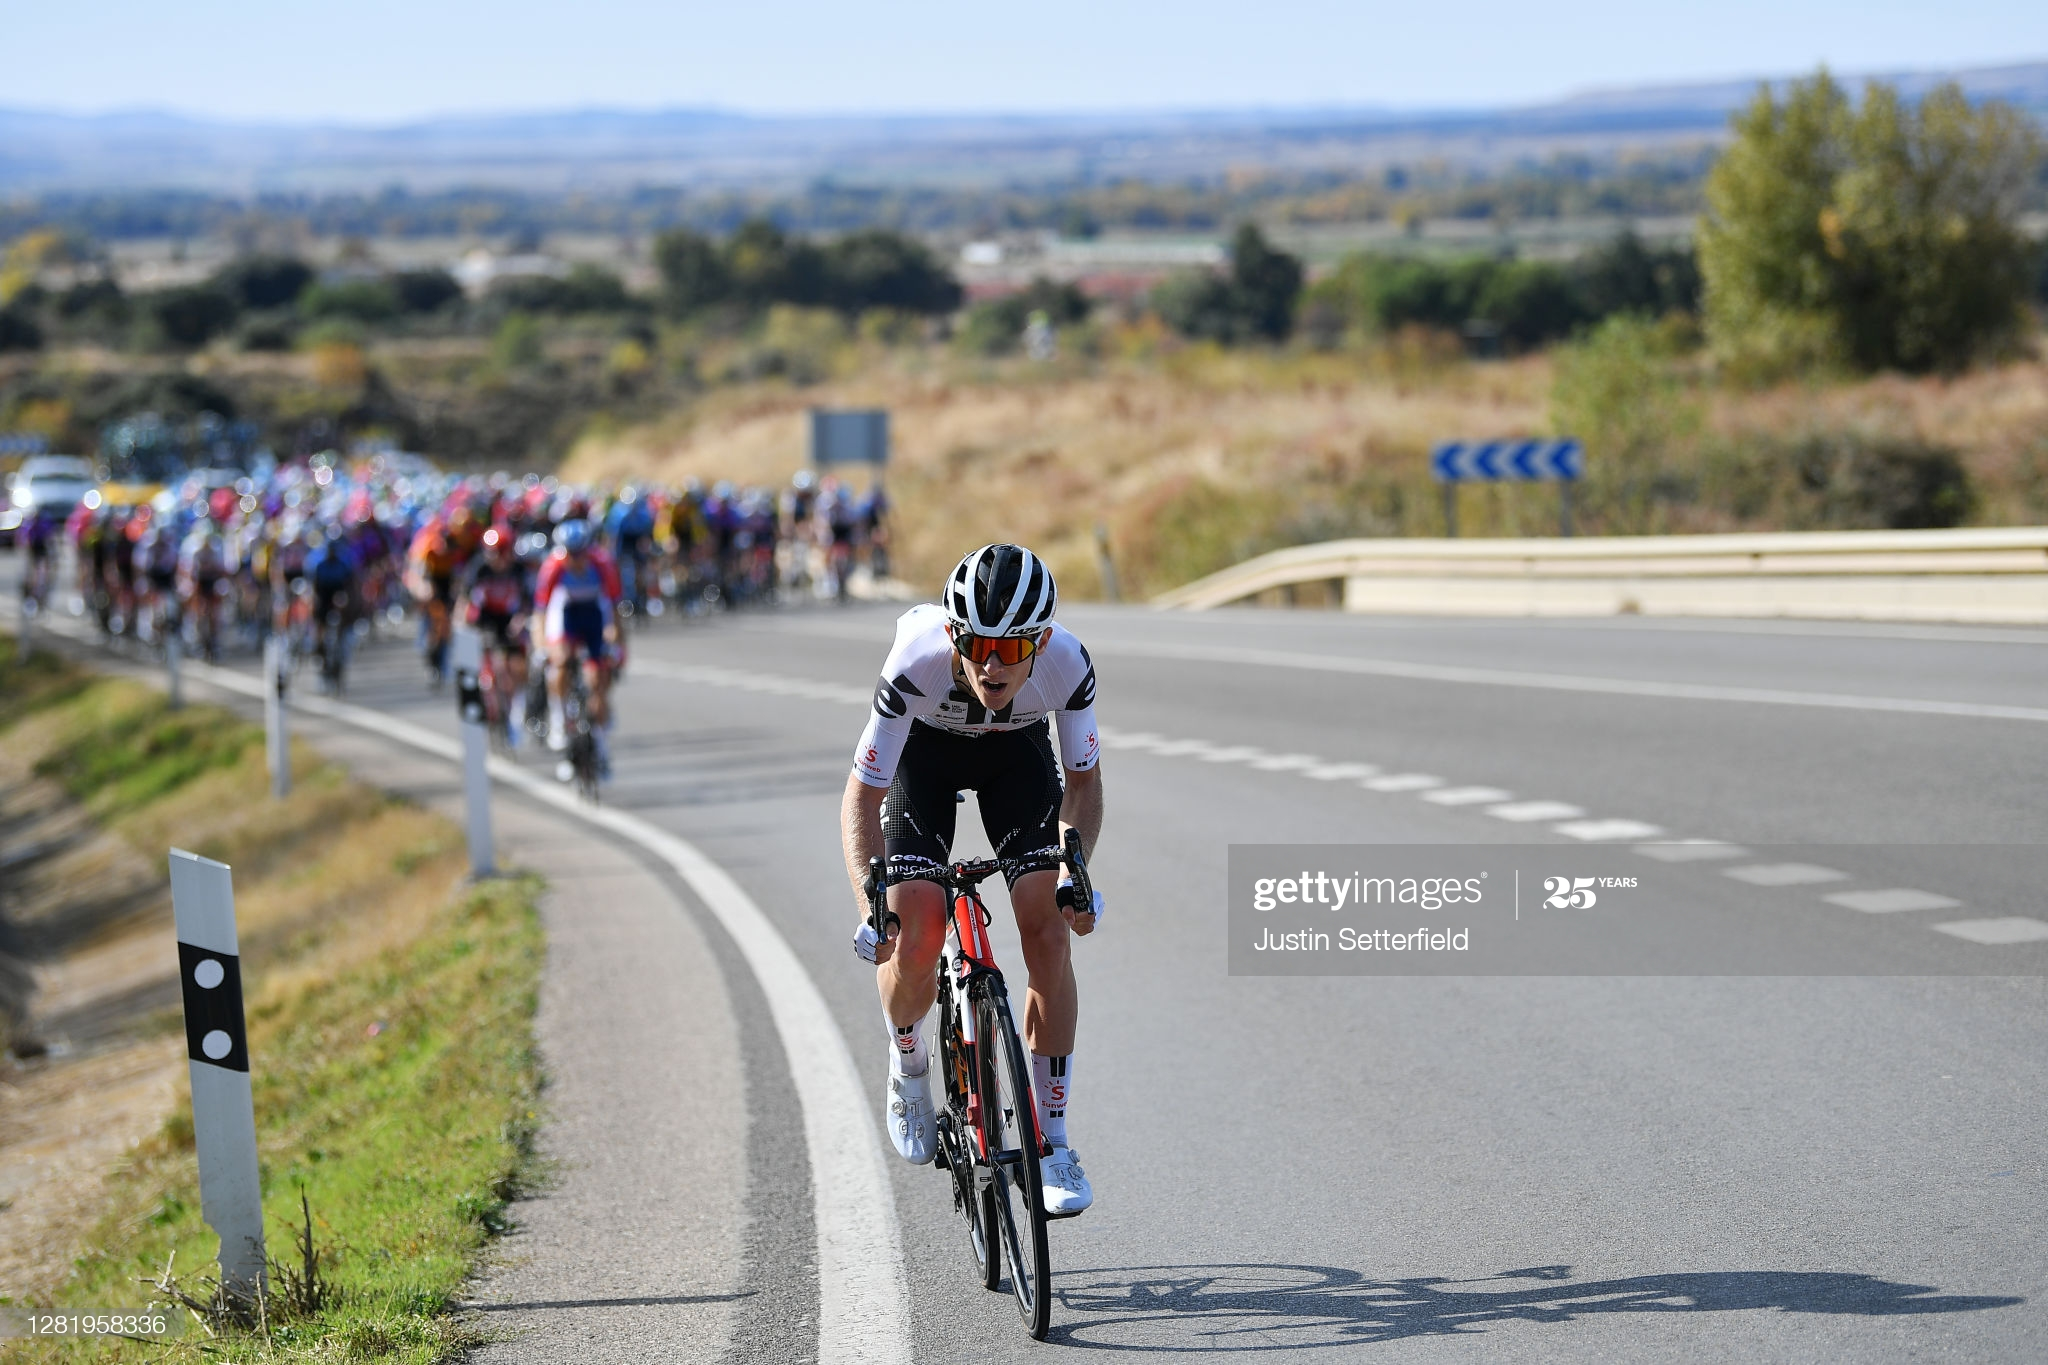 SABIÑANIGO, SPAIN - OCTOBER 24: Martin Salmon of Germany and Team Sunweb / during the 75th Tour of Spain 2020, Stage 5 a 184,4km Huesca to Sabiñánigo 835m / @lavuelta / #LaVuelta20 / La Vuelta / on October 24, 2020 in Sabiñánigo, Spain. (Photo by Justin Setterfield/Getty Images)